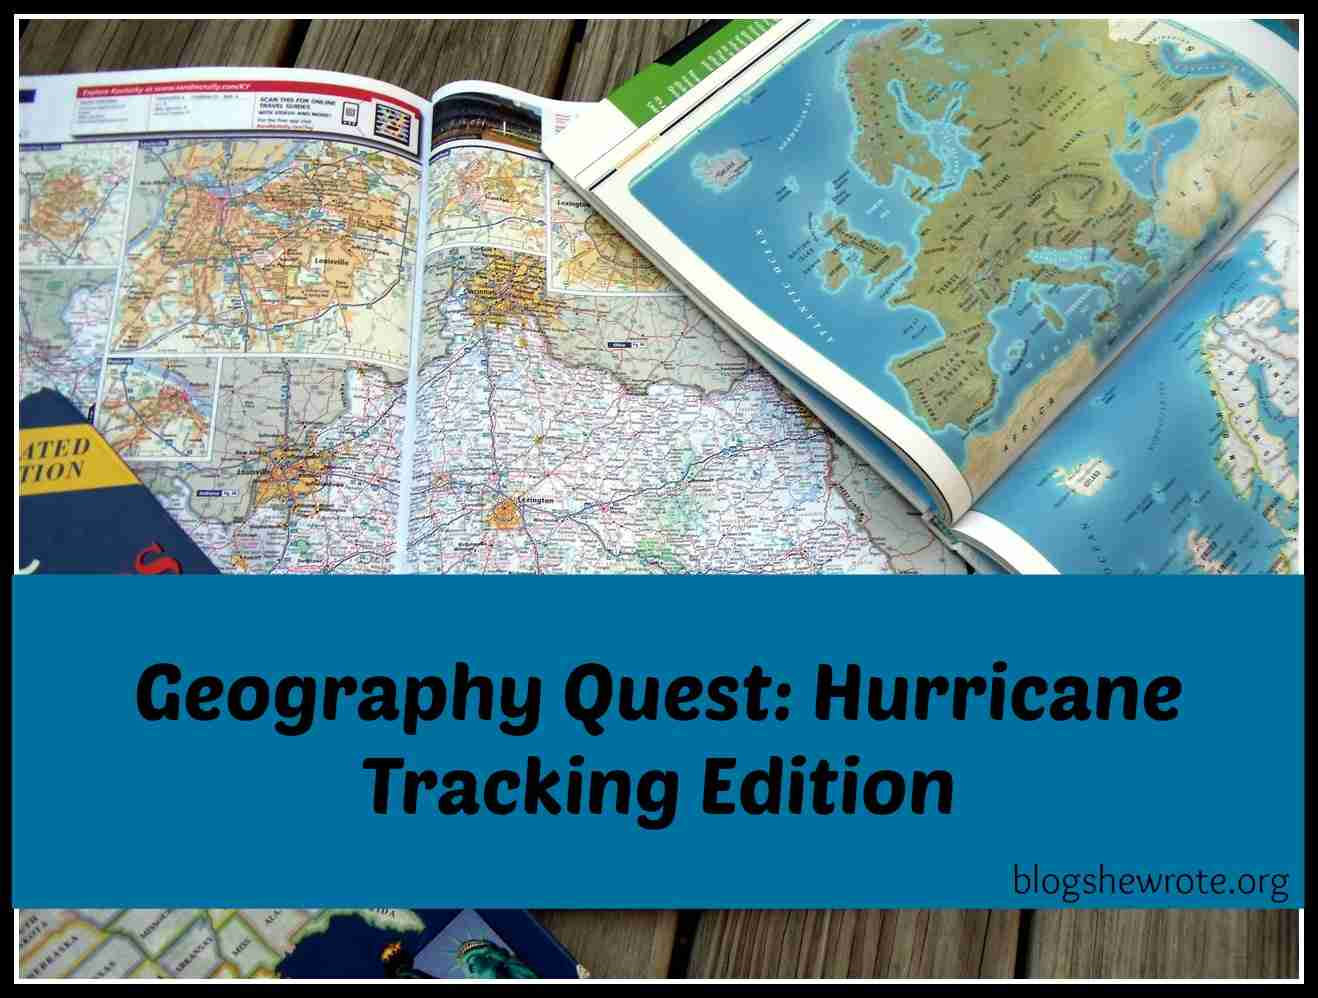 Blog, She Wrote: Geography Quest- Hurricane Tracking Edition